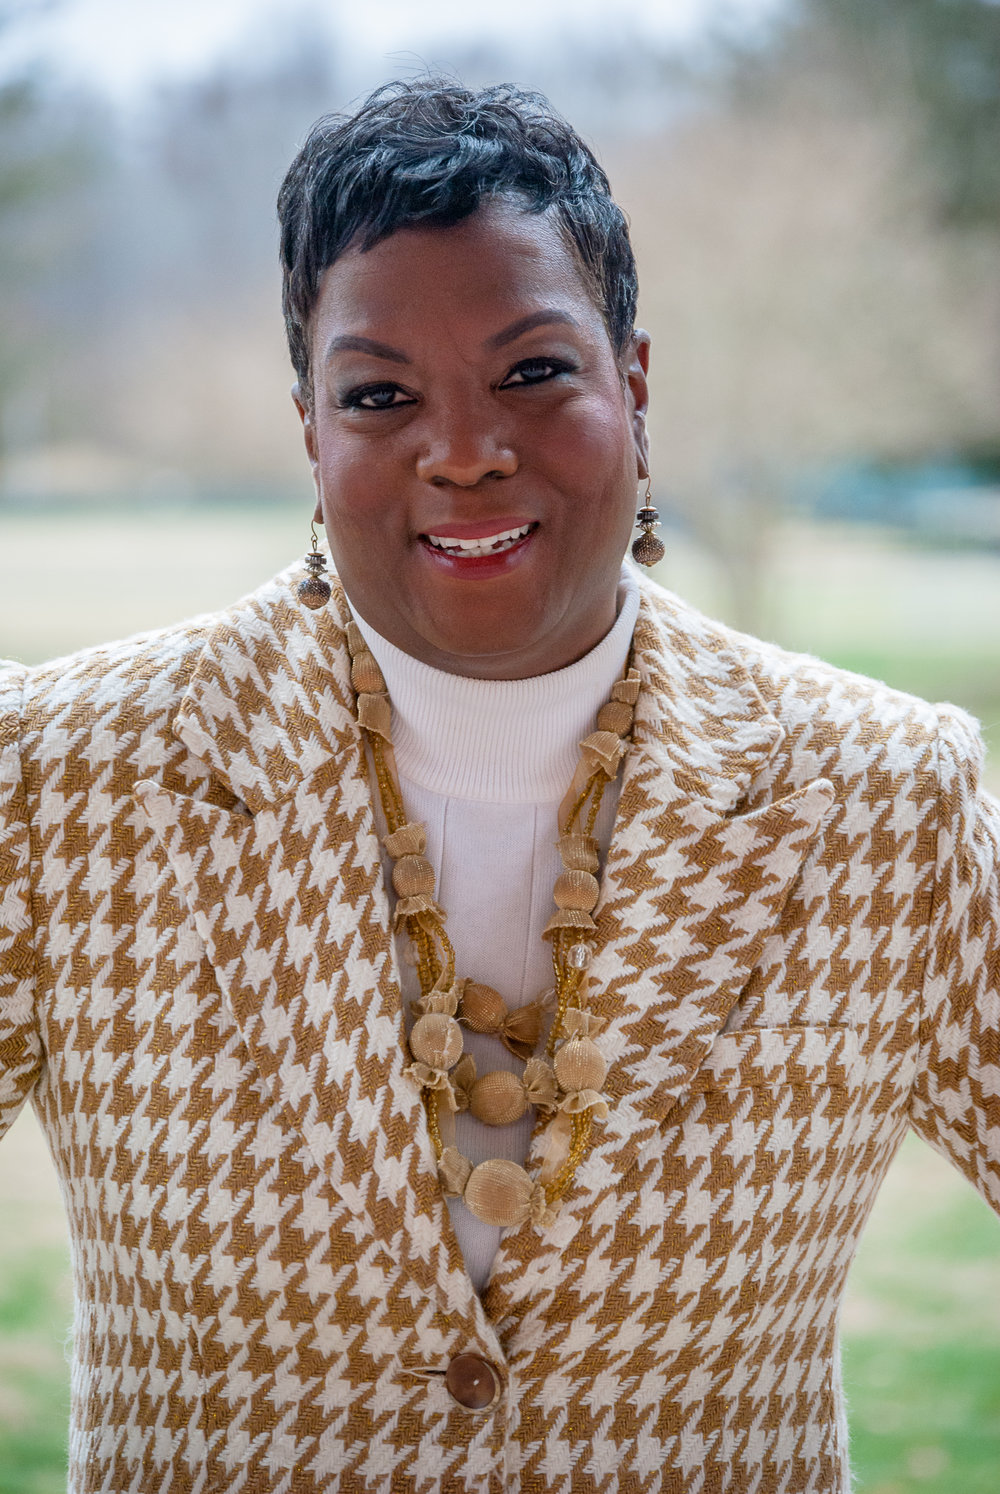 Meet Dr. Charlene Winley - Speaker, Life Strategist & Transformation Specialist